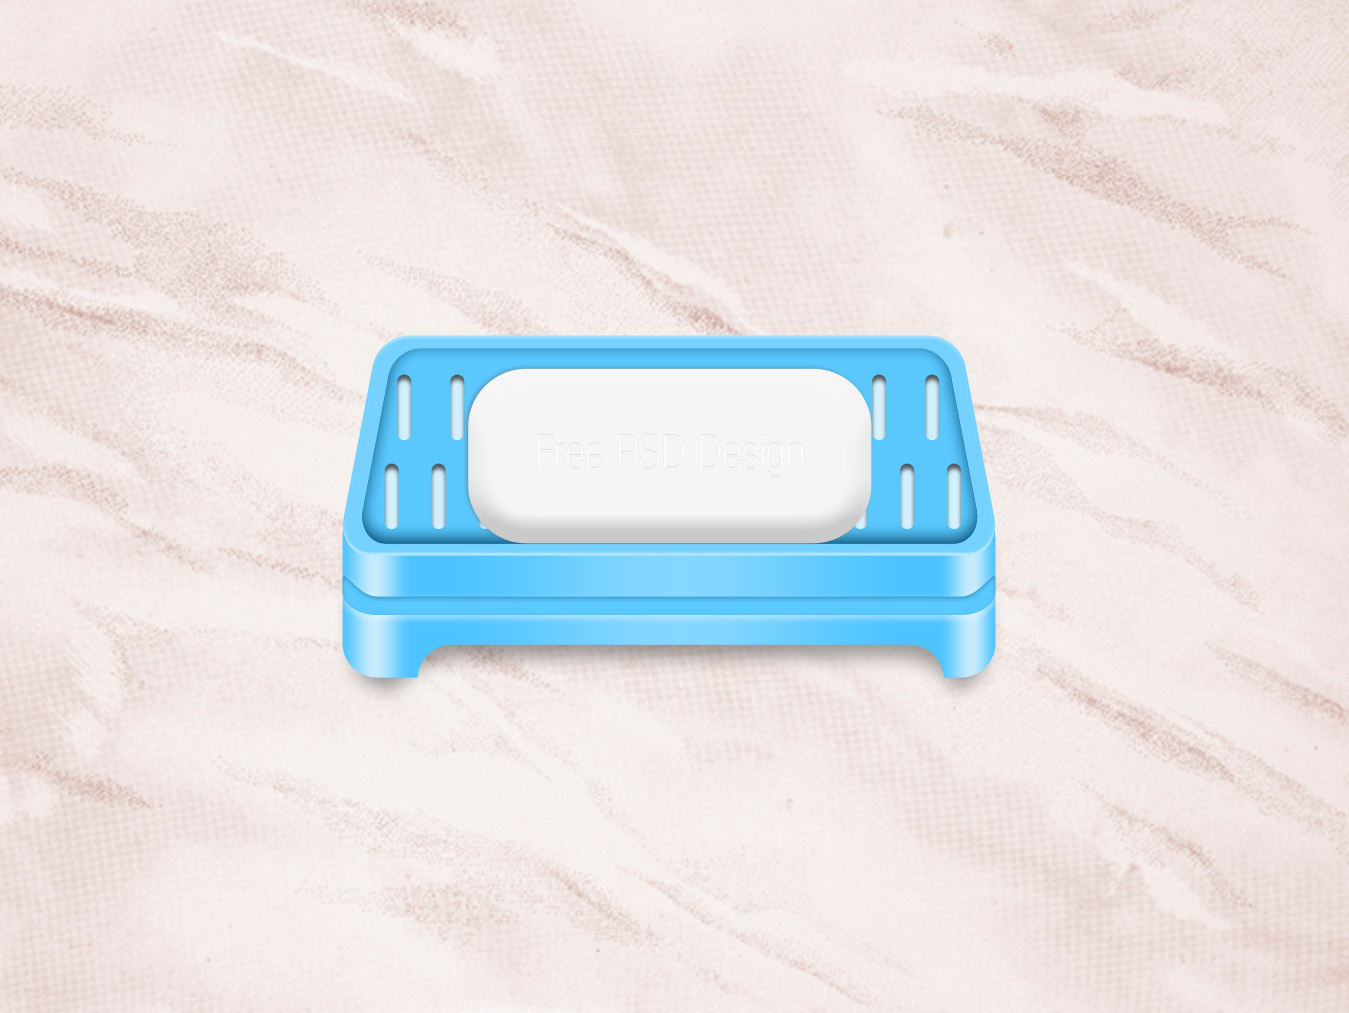 Soap Tray PSD Mockup icon free download